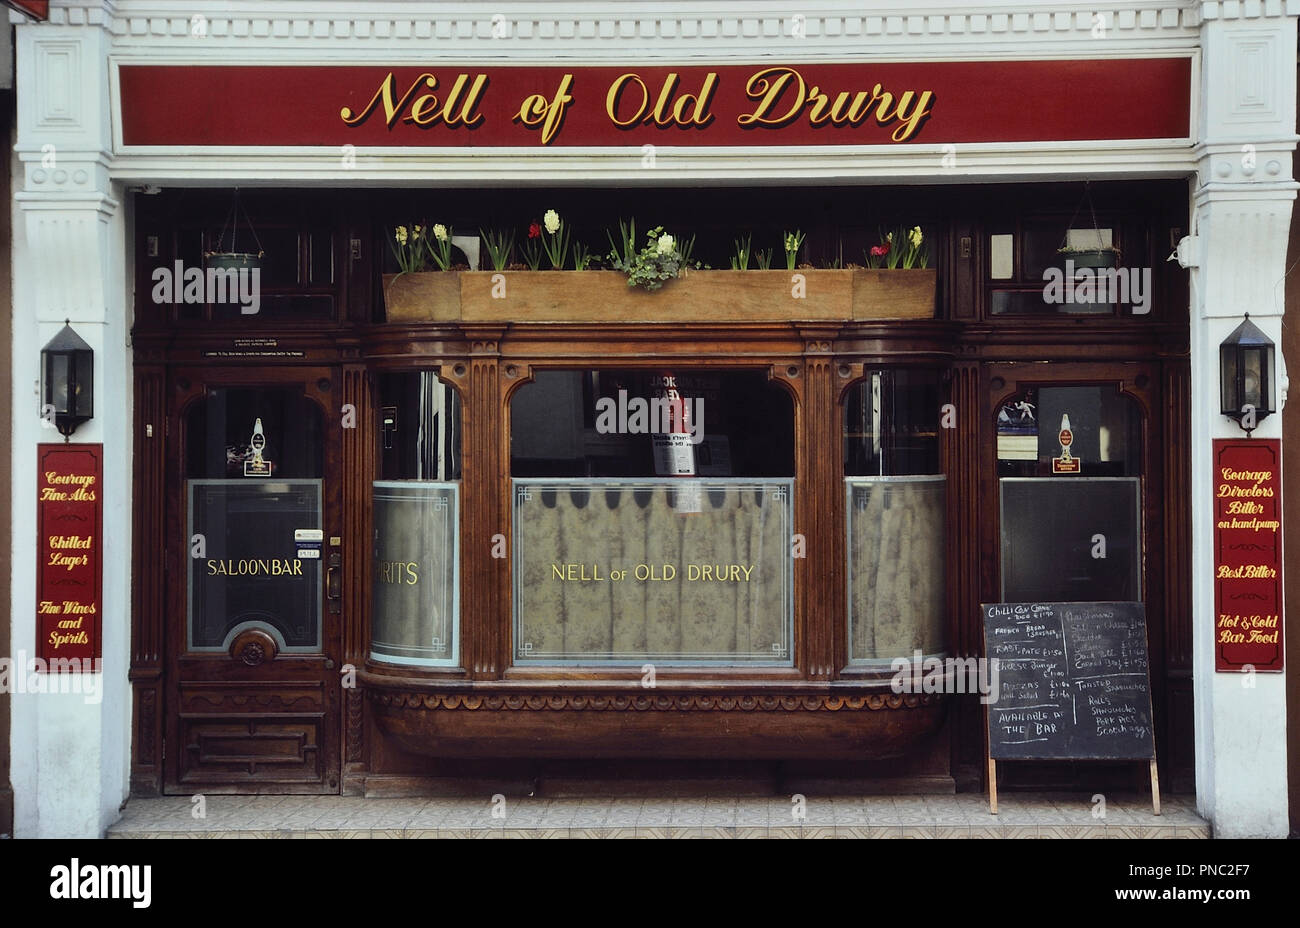 Nell of Old Drury pub, London, England, UK. Circa 1980's - Stock Image